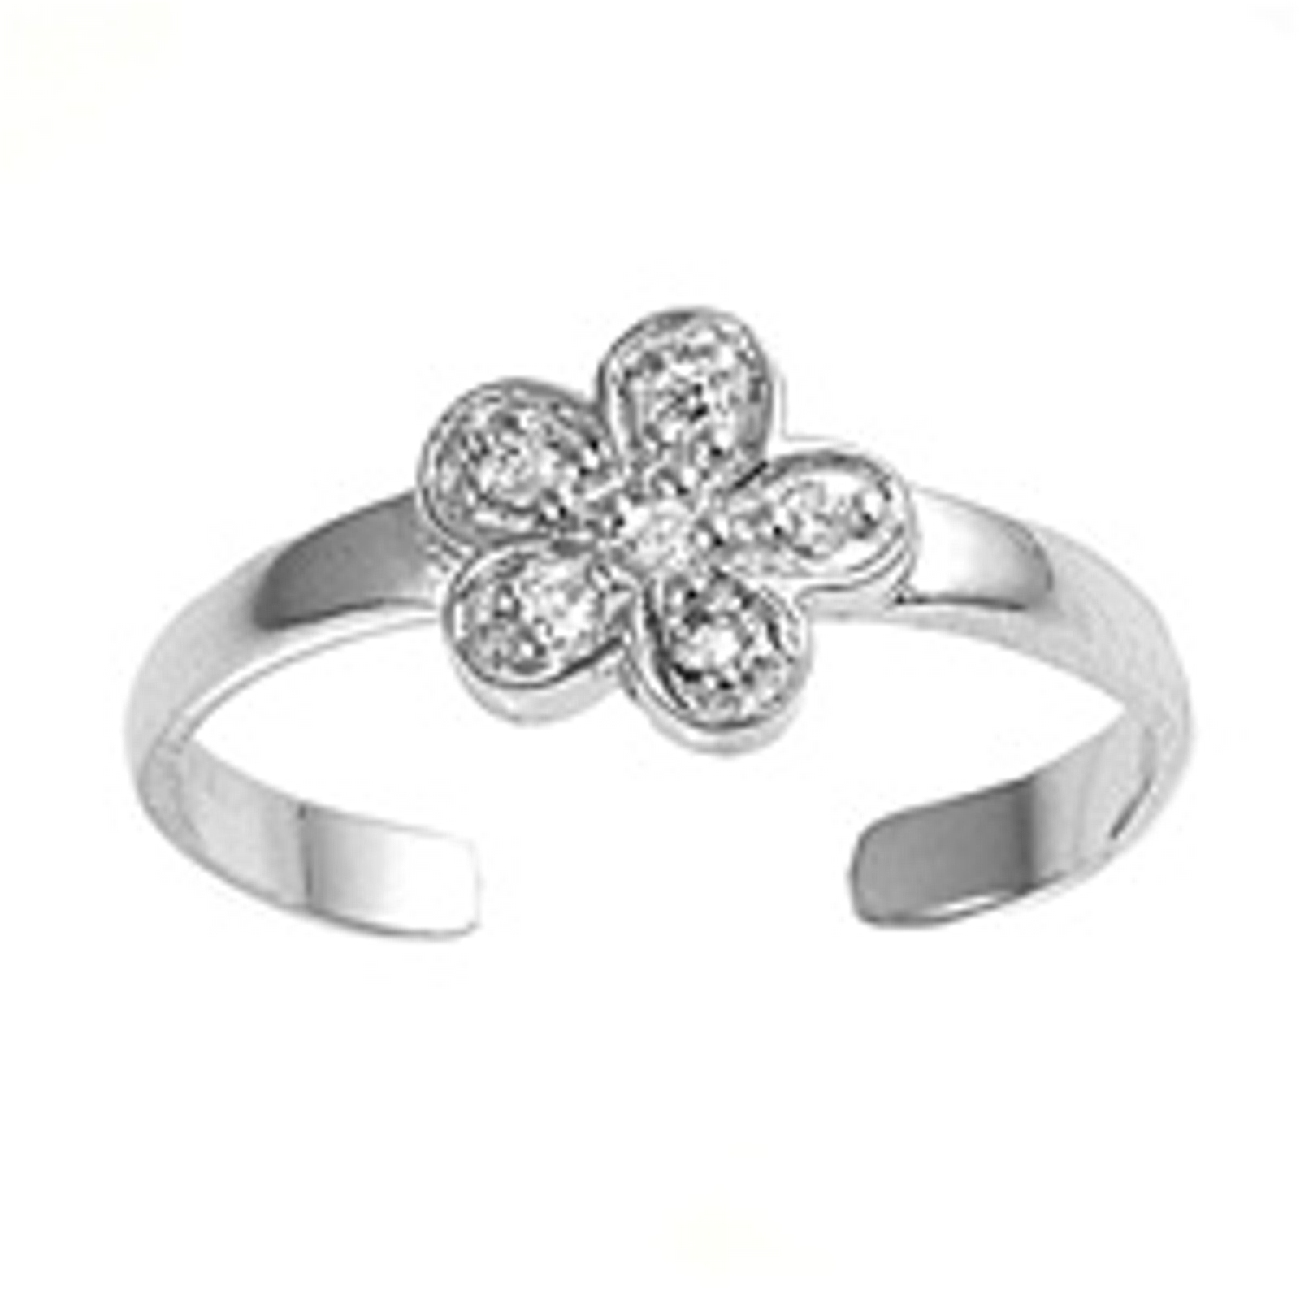 Clear Six Cubic Zirconia Five Petal Flower Adjustable Toe Ring